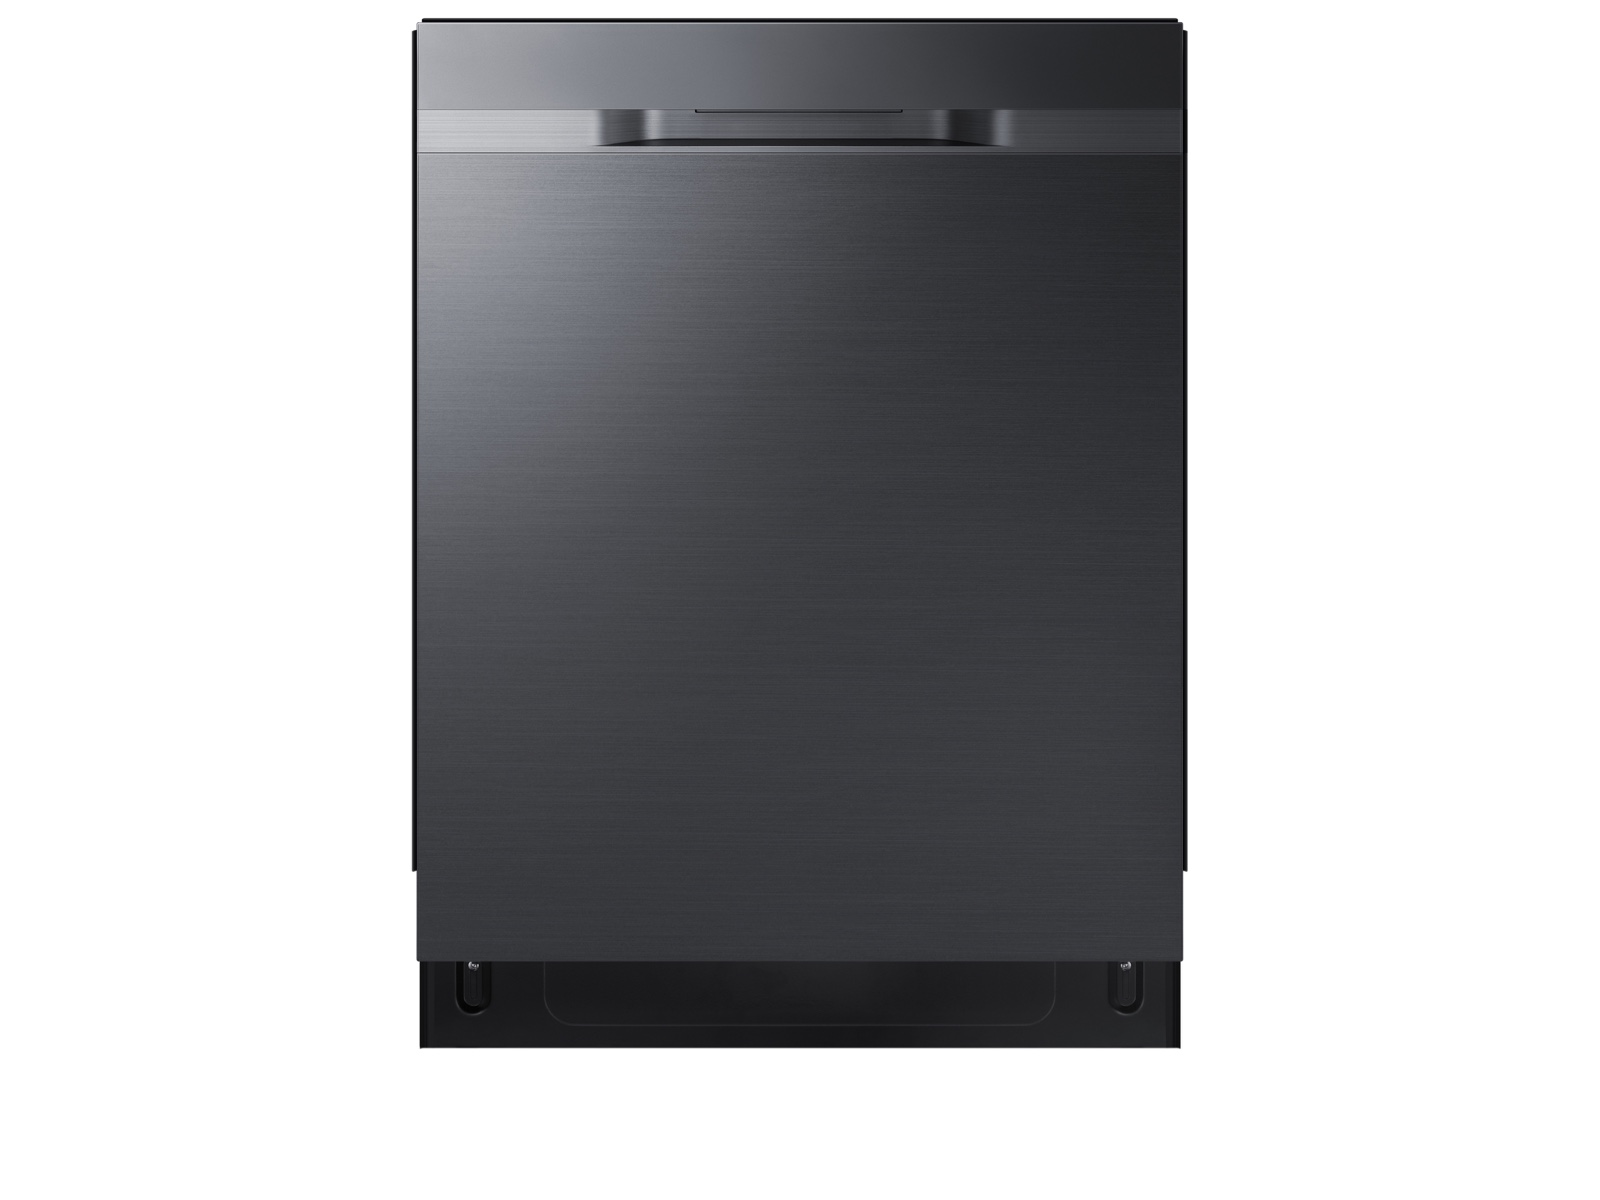 StormWash 42 dBA Dishwasher in Black Stainless Steel